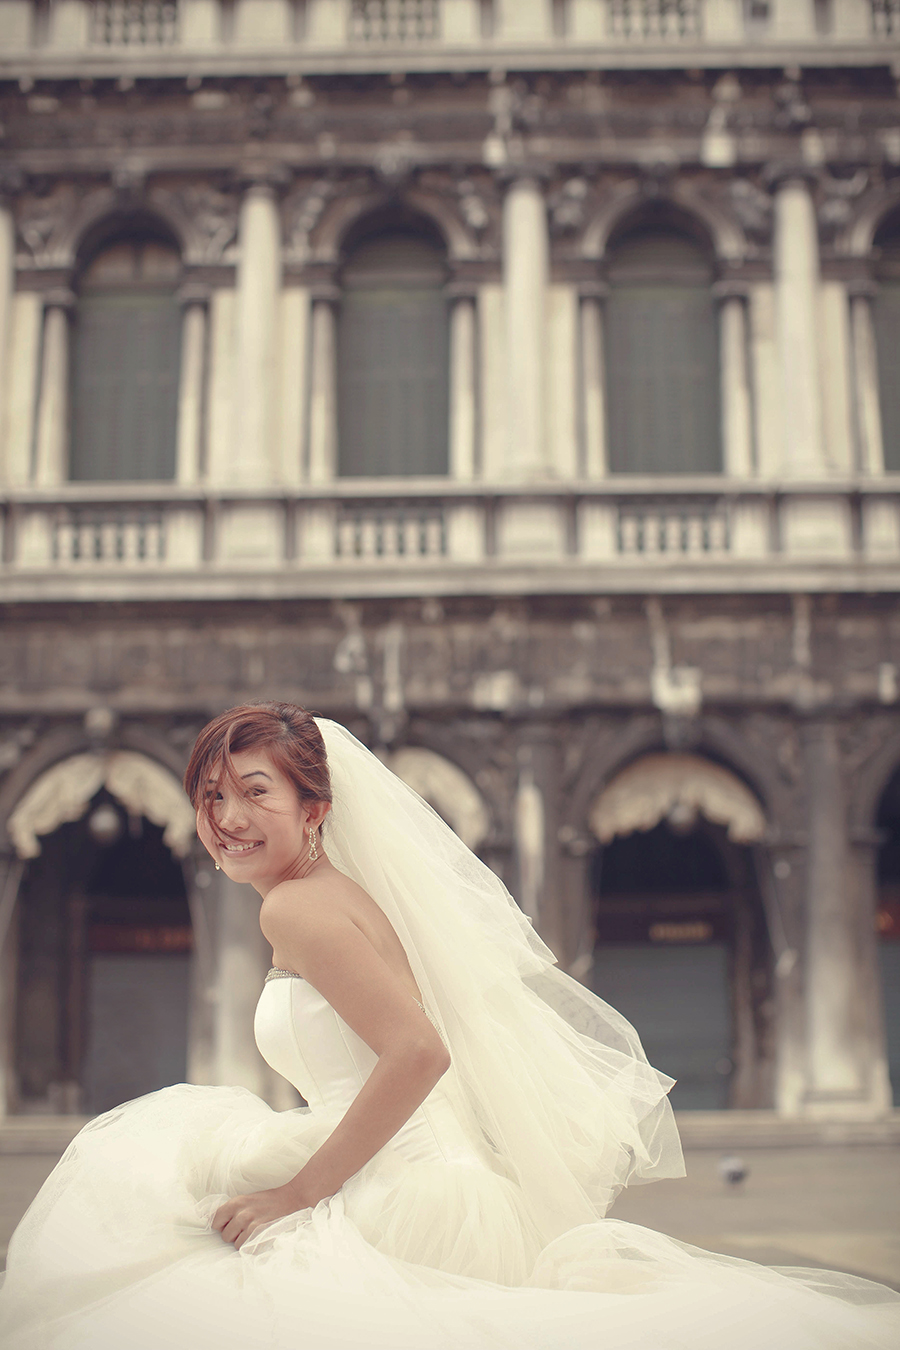 venice italy . wedding photography by kurt ahs . 05379.jpg